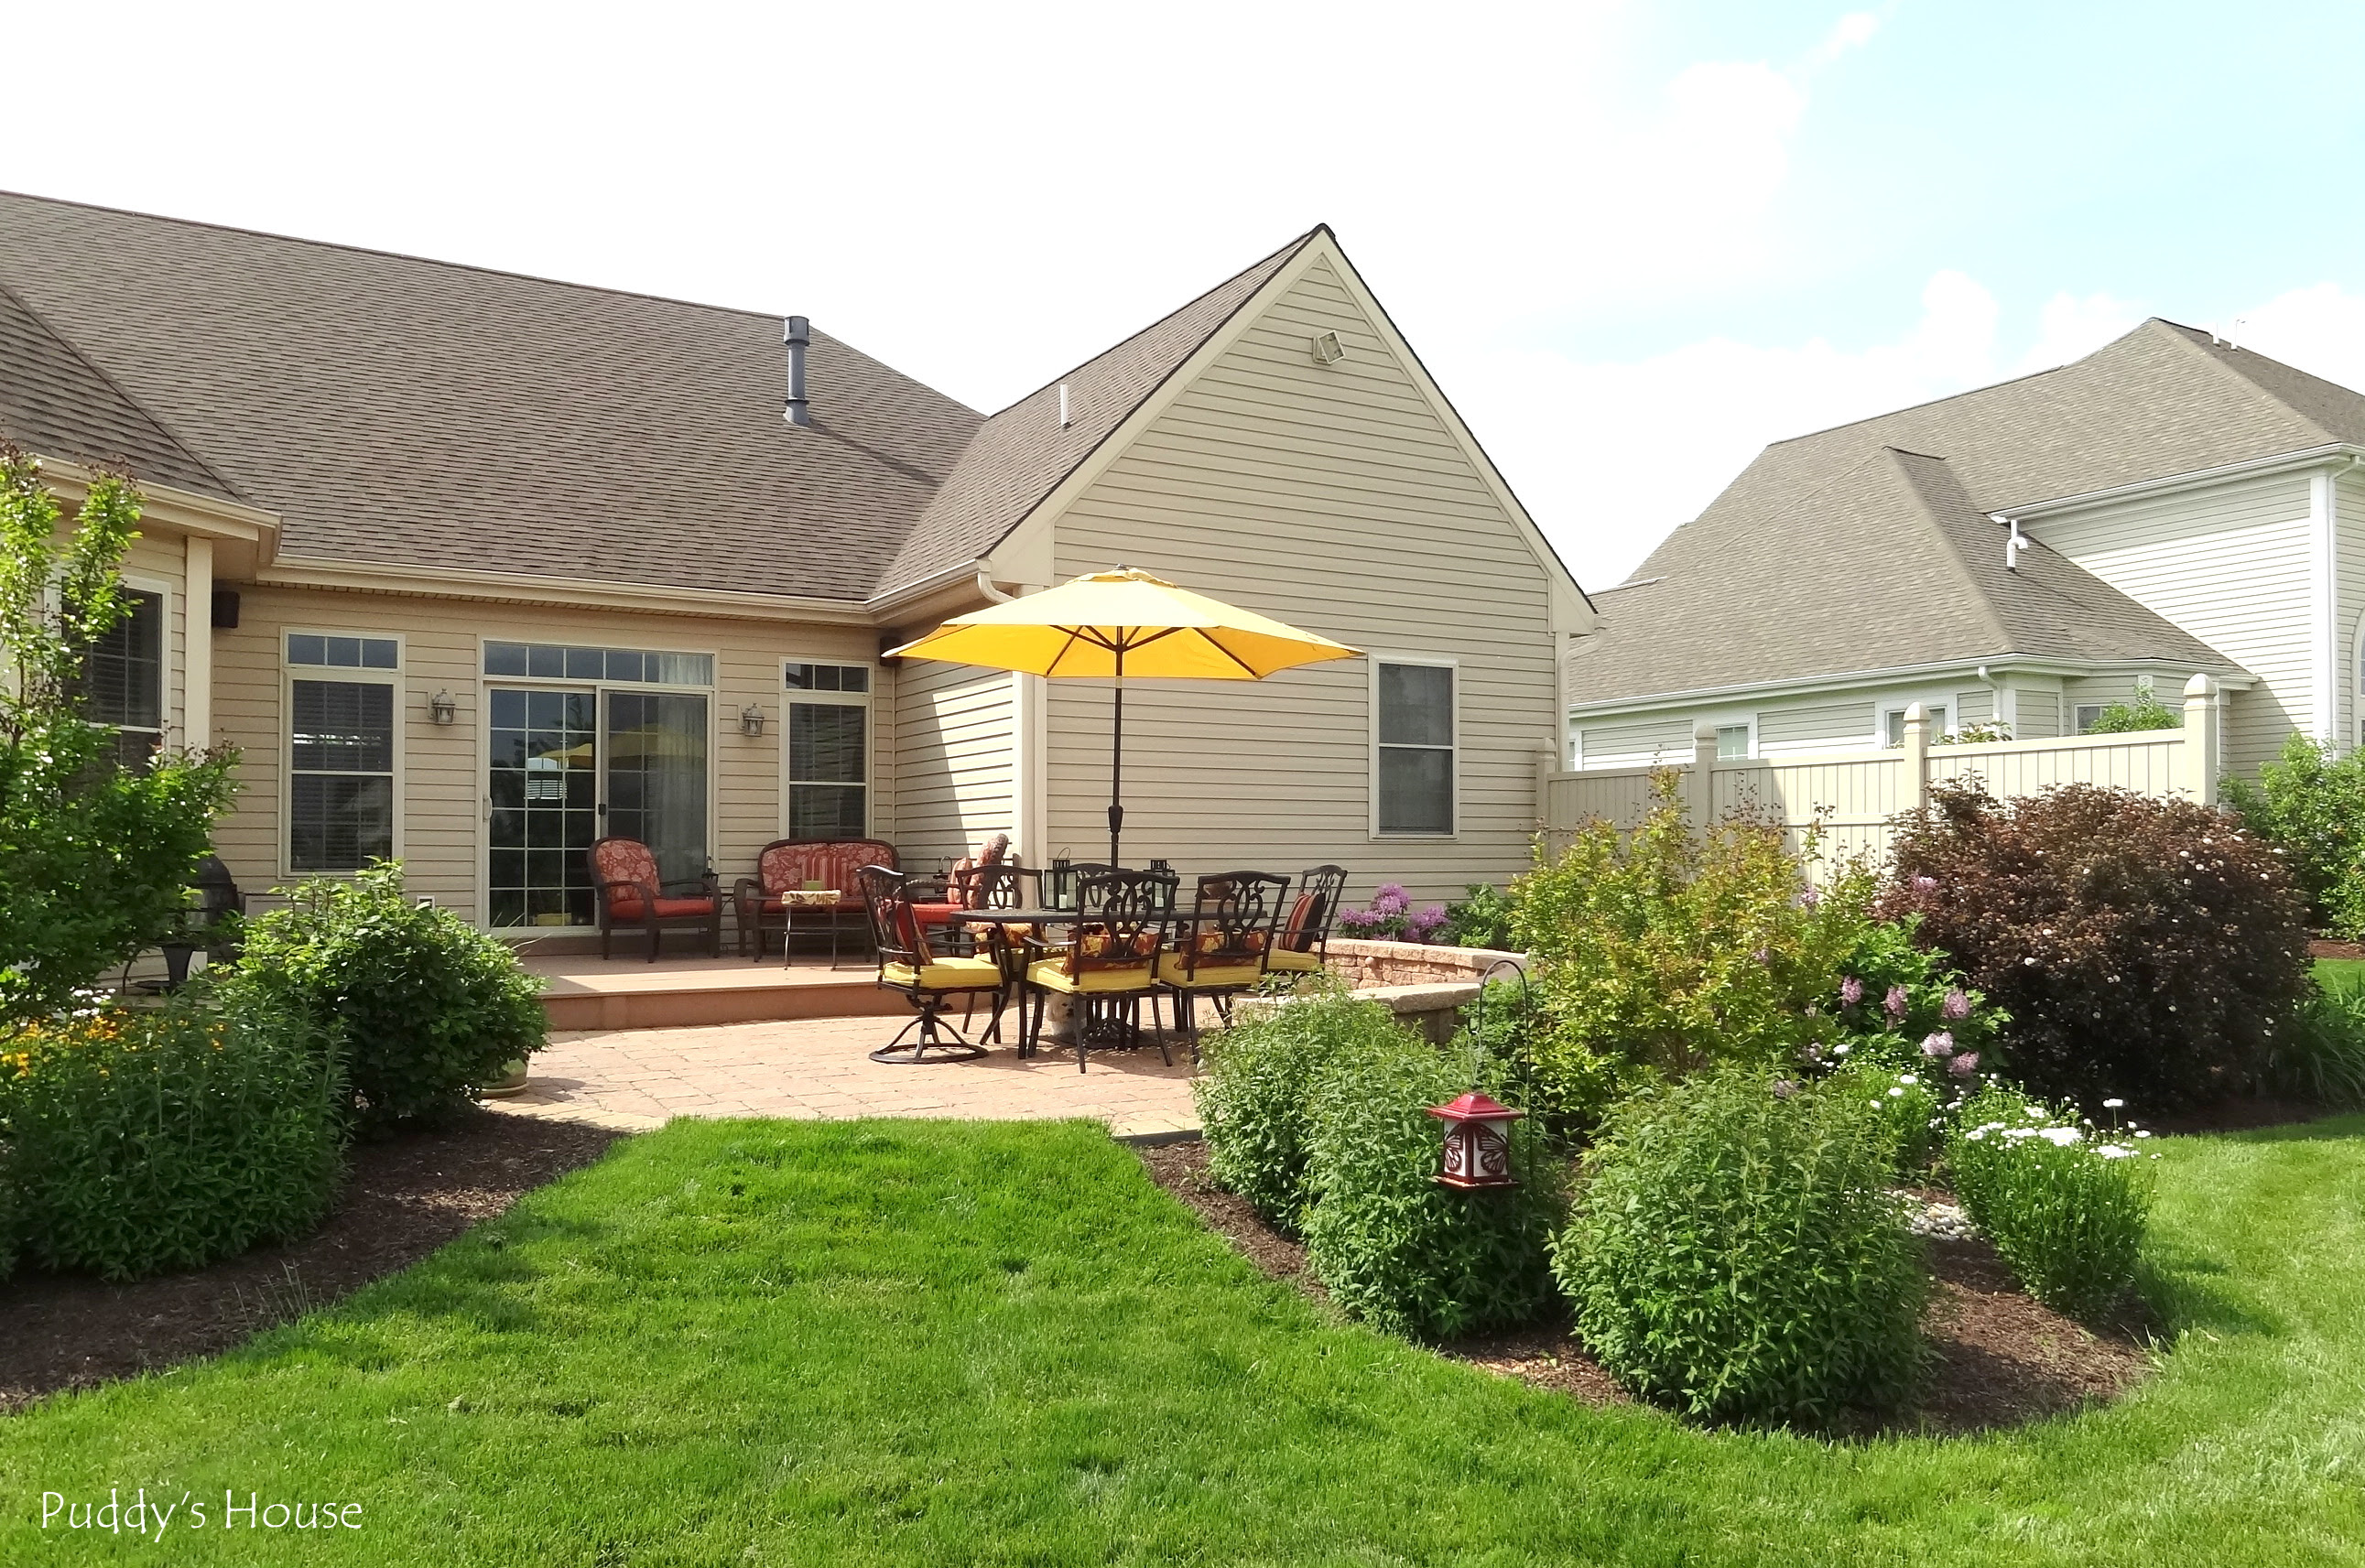 Landscaping Style - Puddy's House